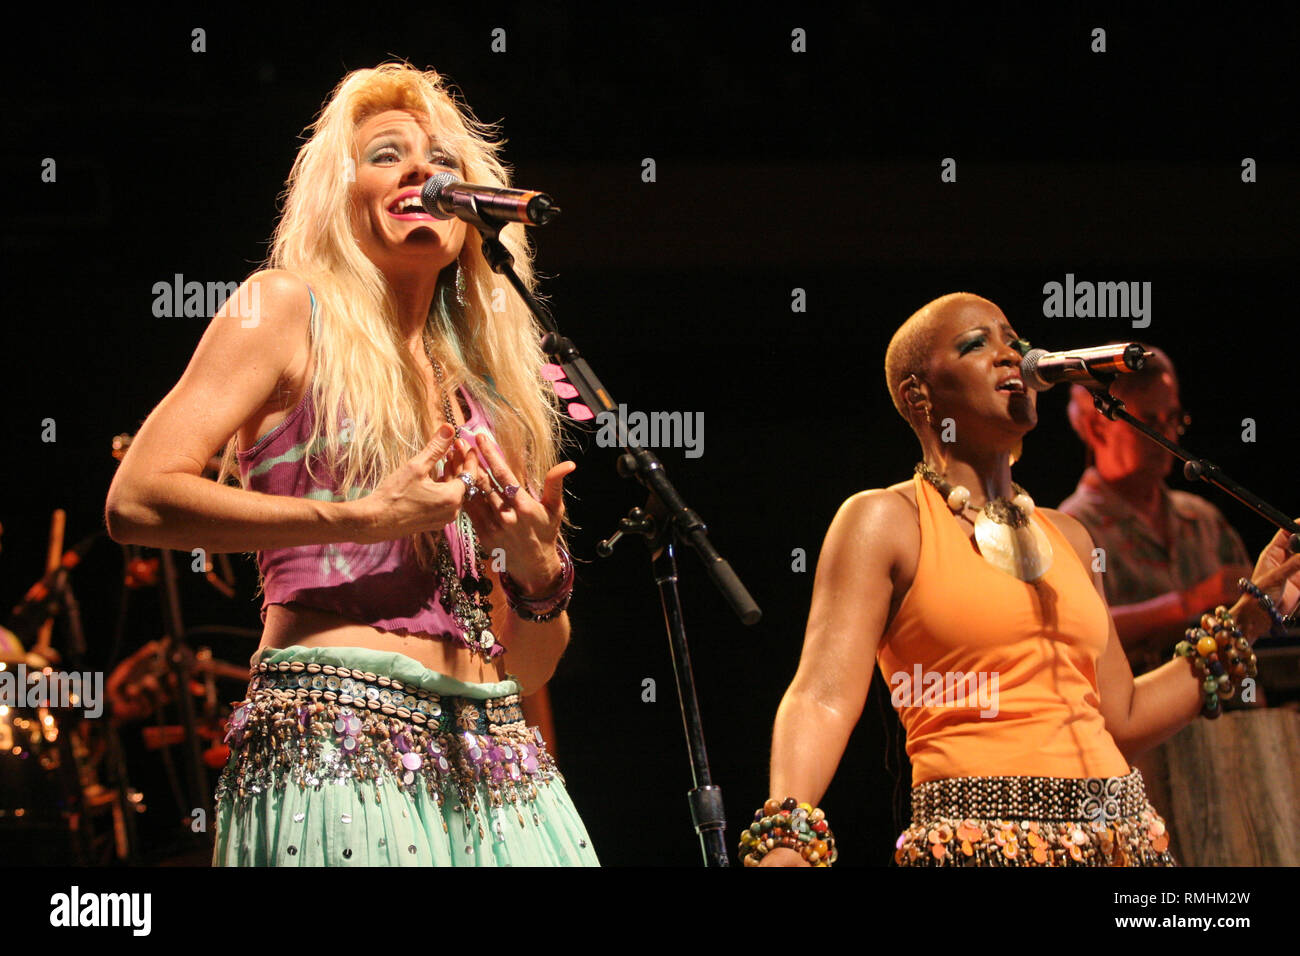 Singers are shown onstage during a Jimmy Buffett concert